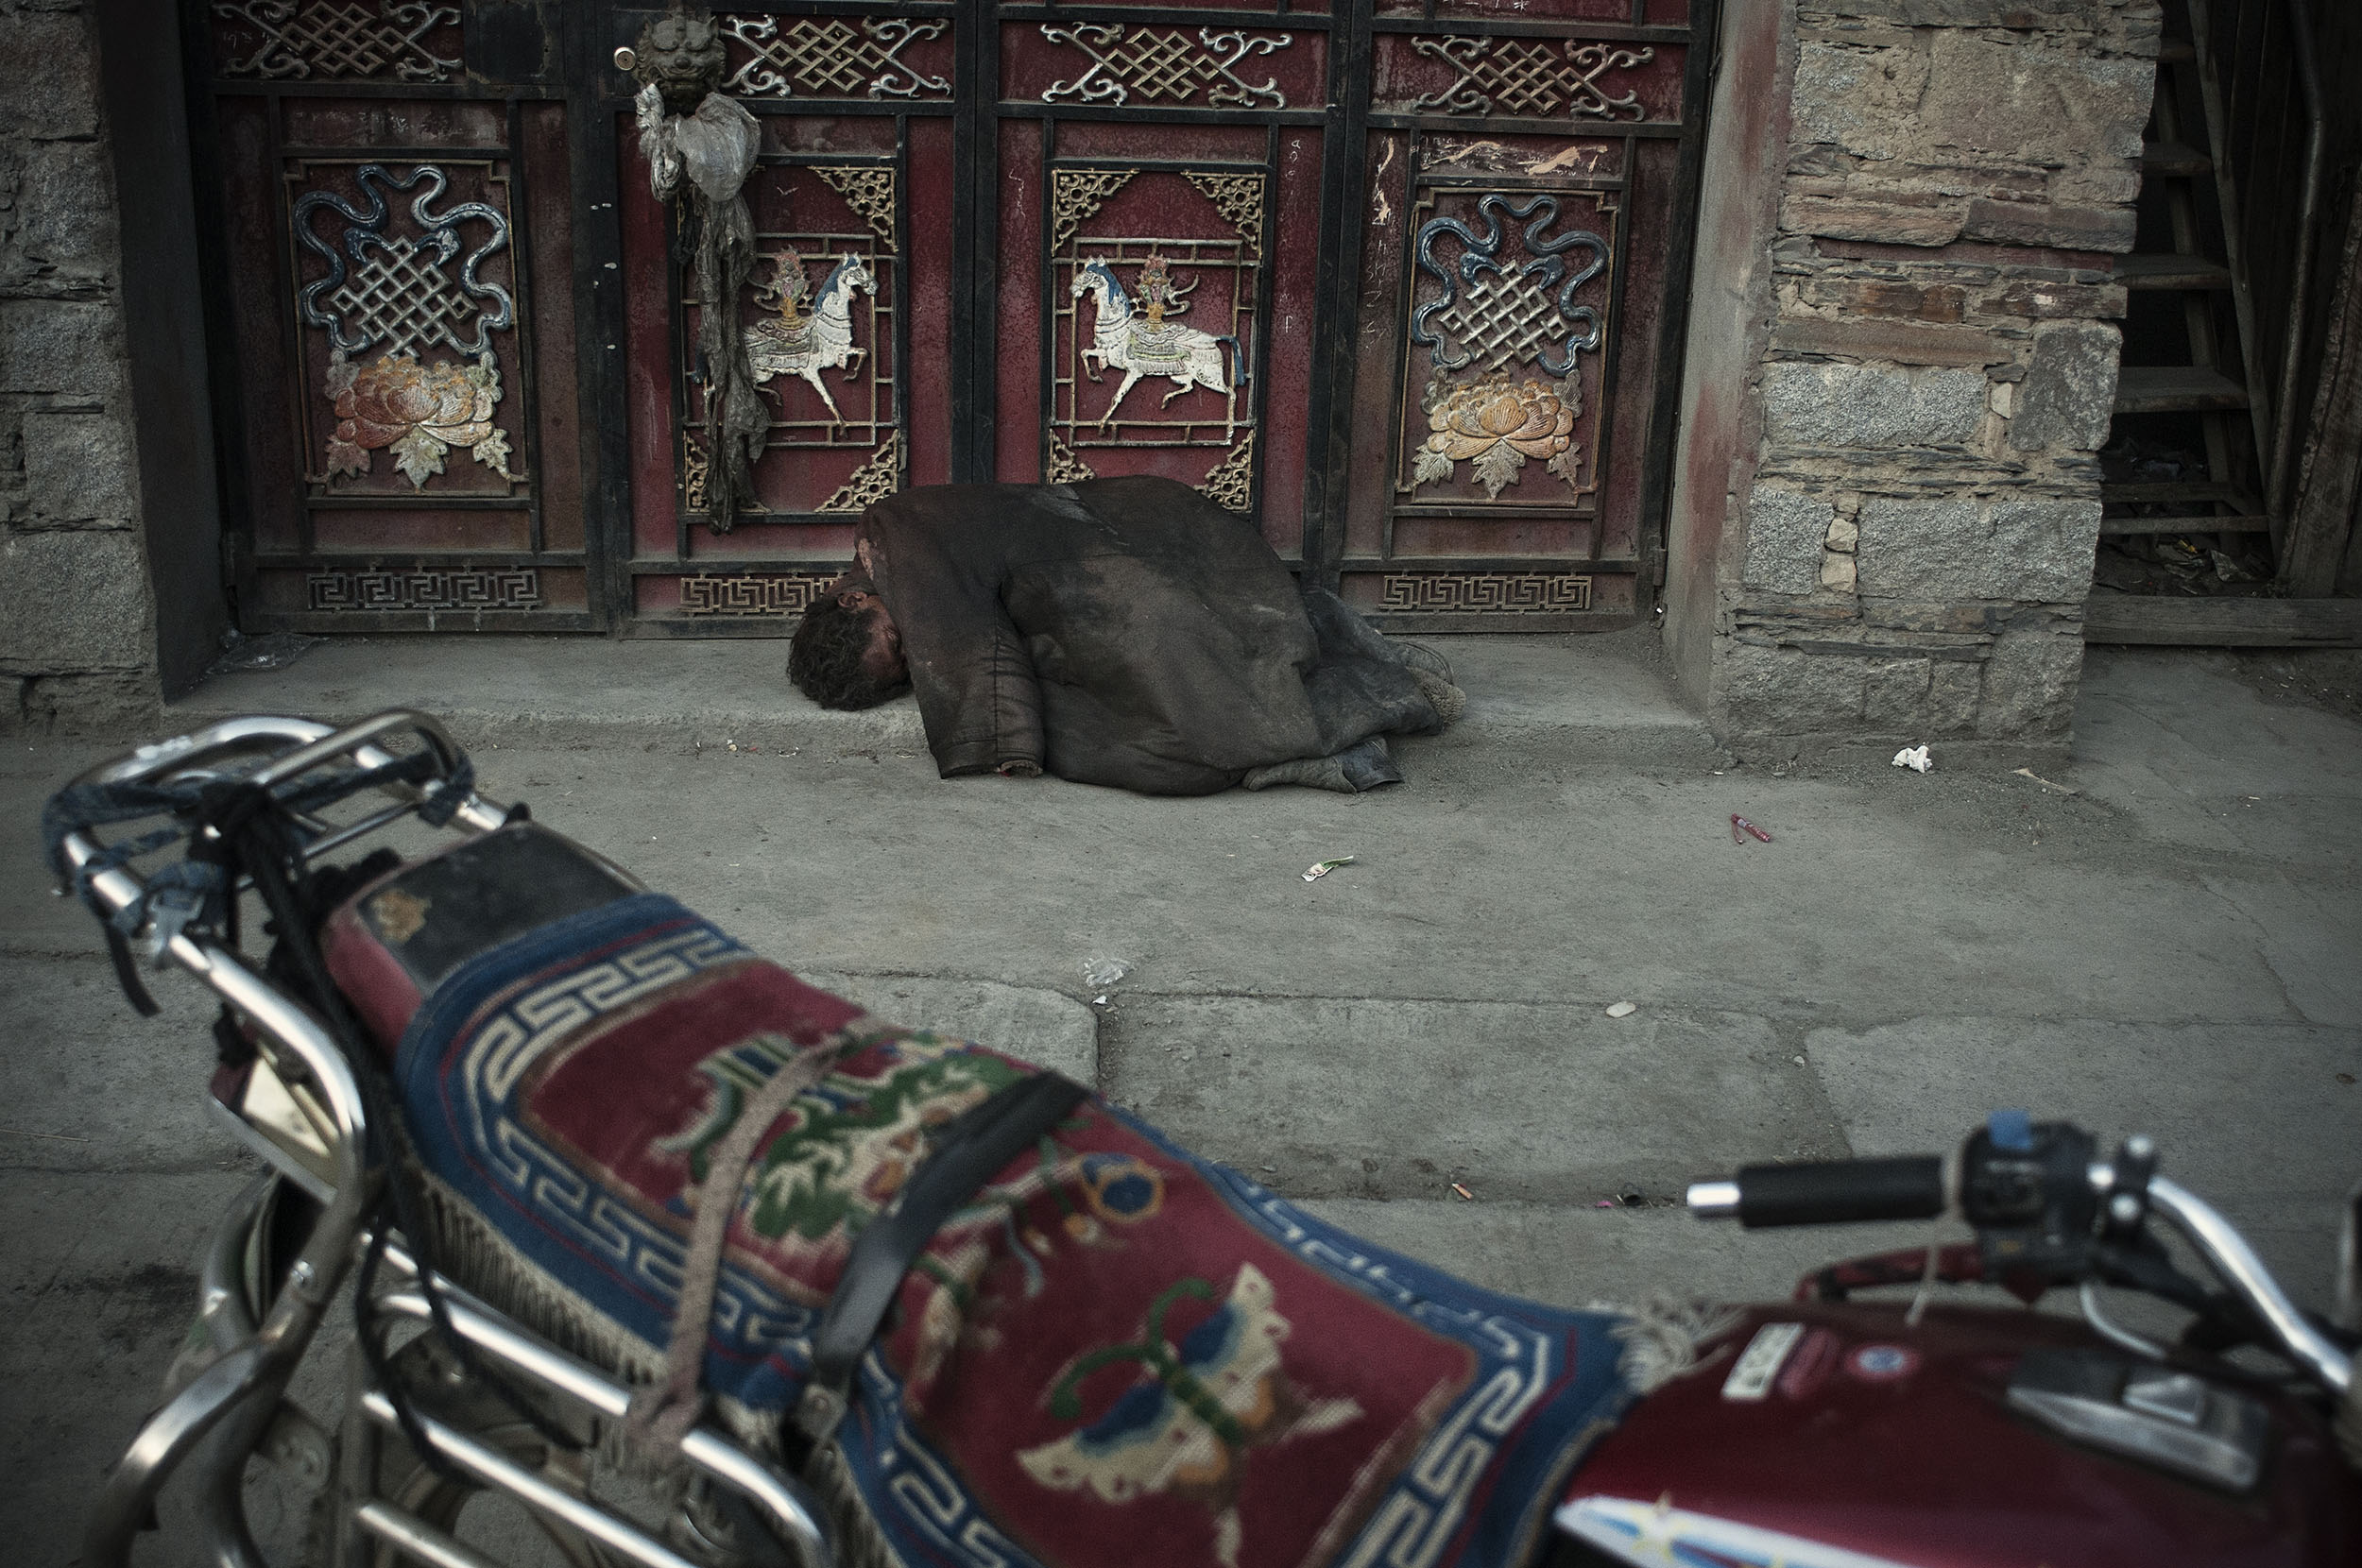 In Tagong (Sichuan) a beggar sleeping on the street in spite of sub freezing temperatures. The government policy of resettling the nomads is a threat to their livelihood. Most of them, with no education, and ill prepared for life in the city are unable to generate alternate source of income. Many of them live on government subsidies or compensations initially provided to them. When these dry up they are left with no way to support themselves.